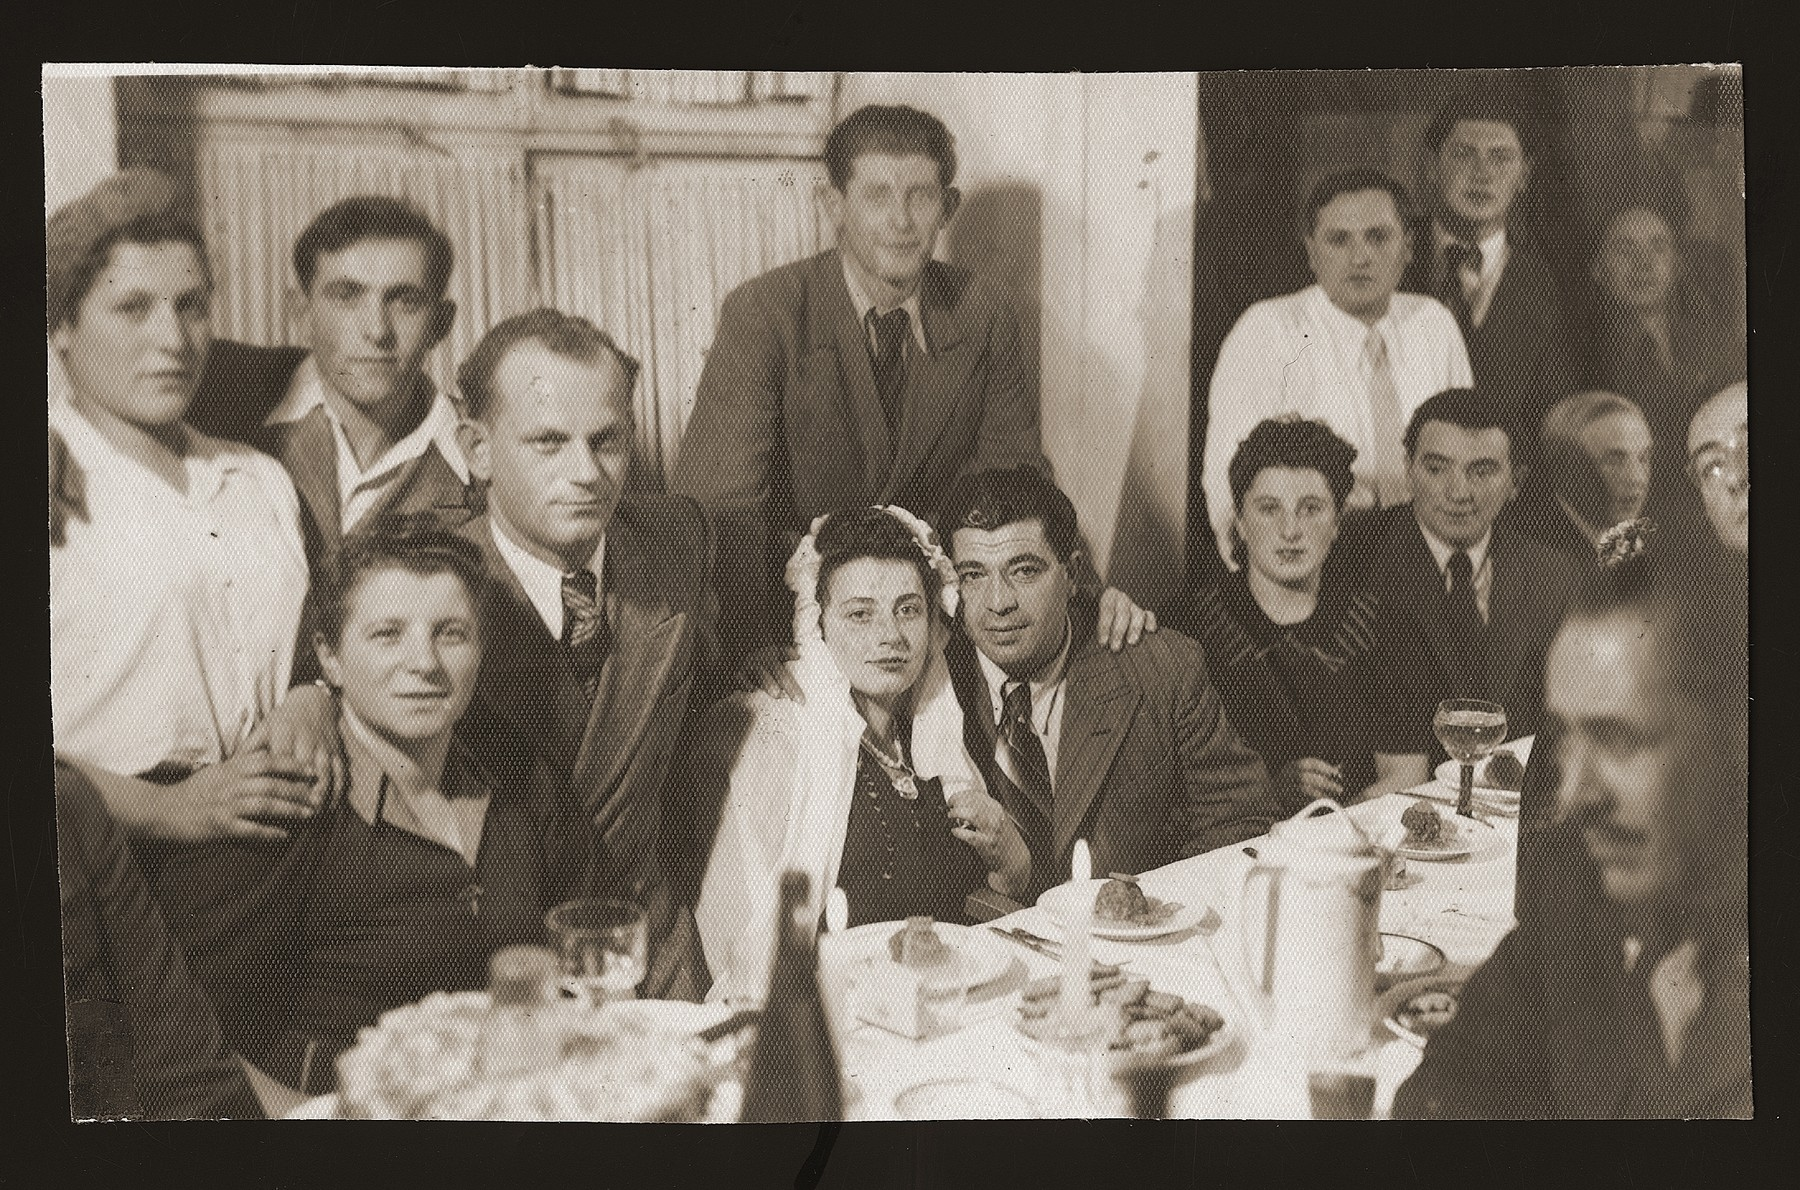 DPs celebrate the marriage of Chaim and Sonia Nishnillevich, the first wedding to take place in the Heidenheim displaced persons camp.